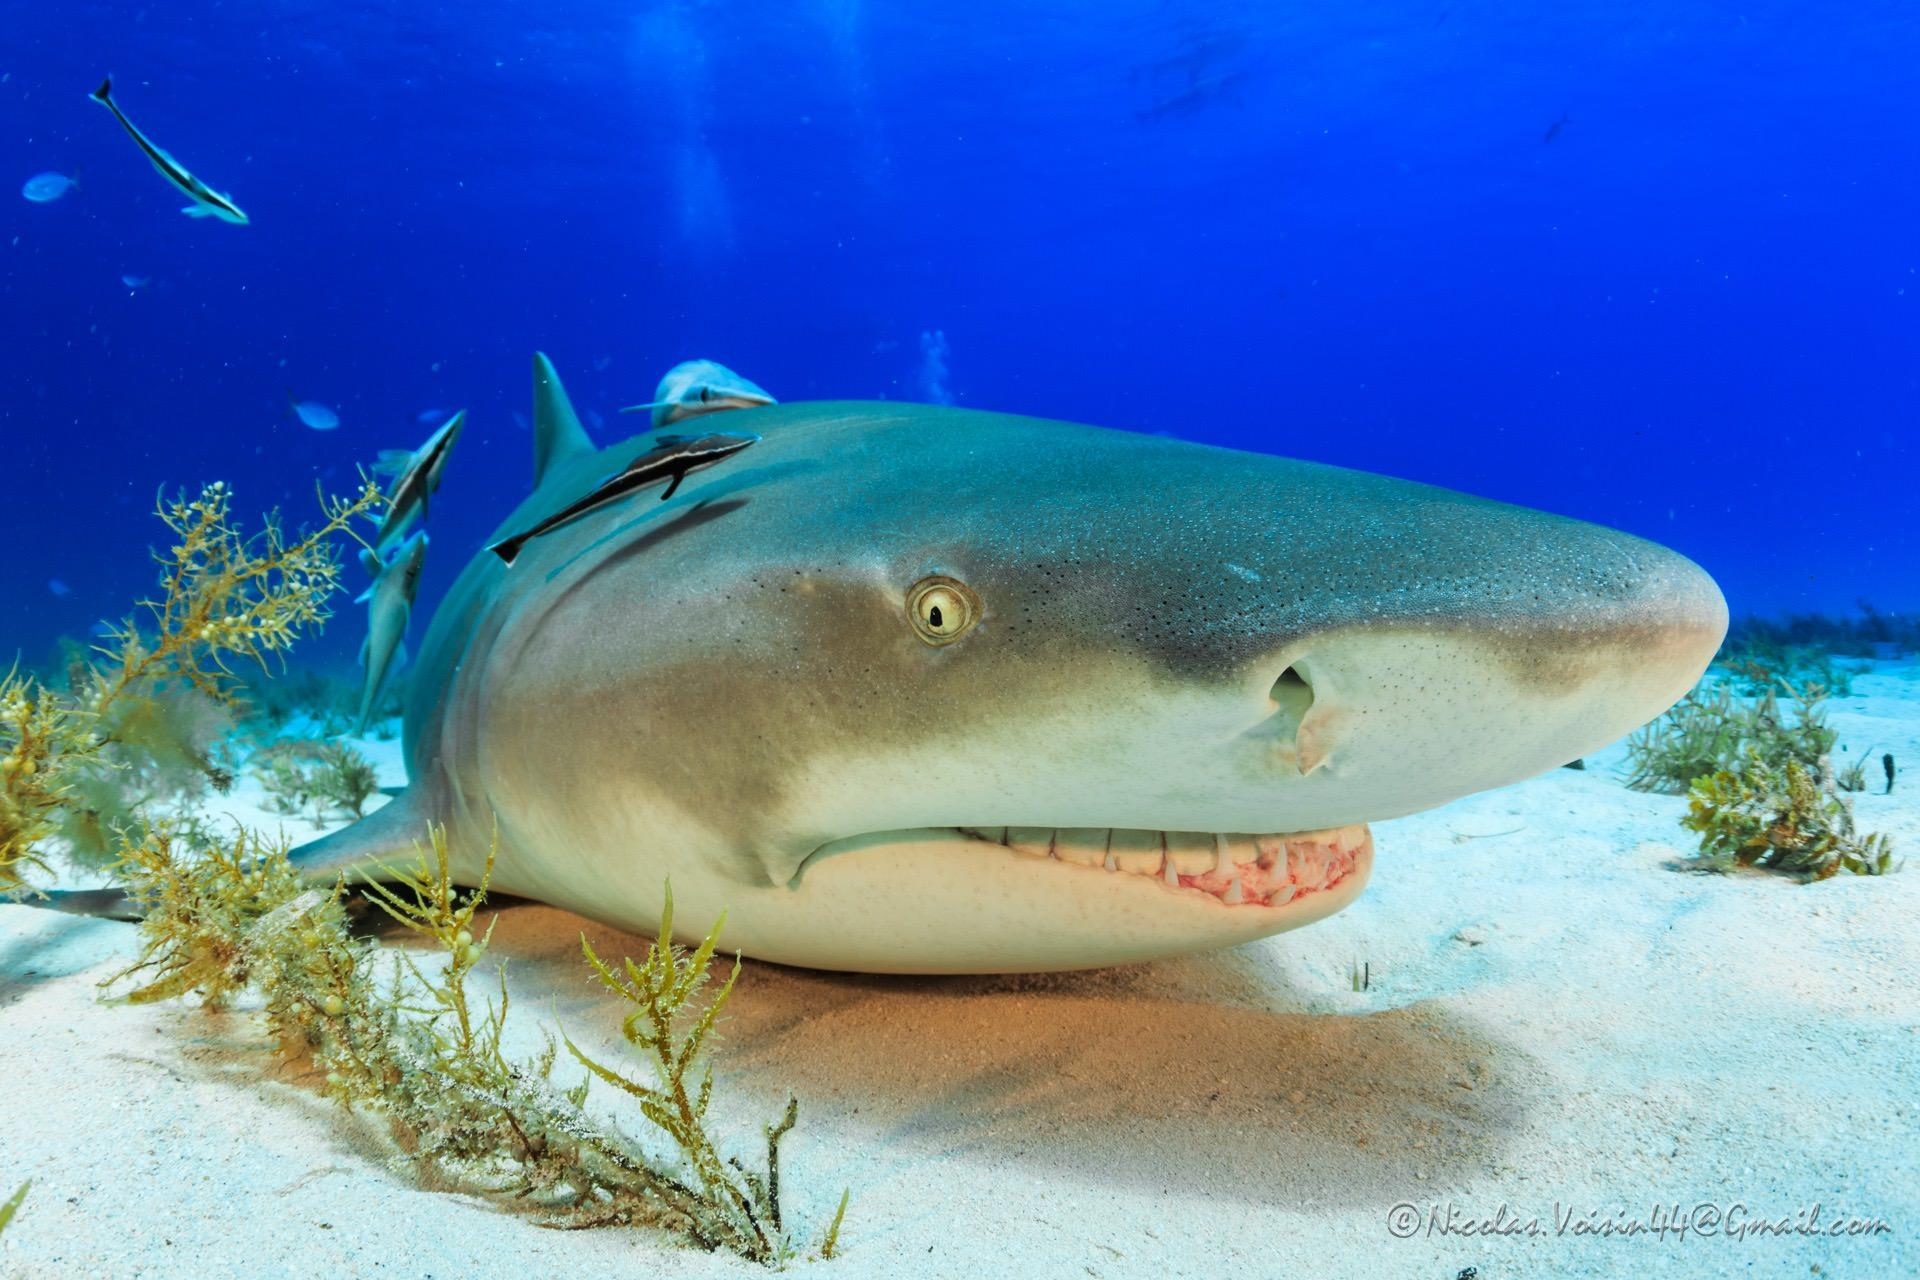 Shark Photo By Nicolas Voisin